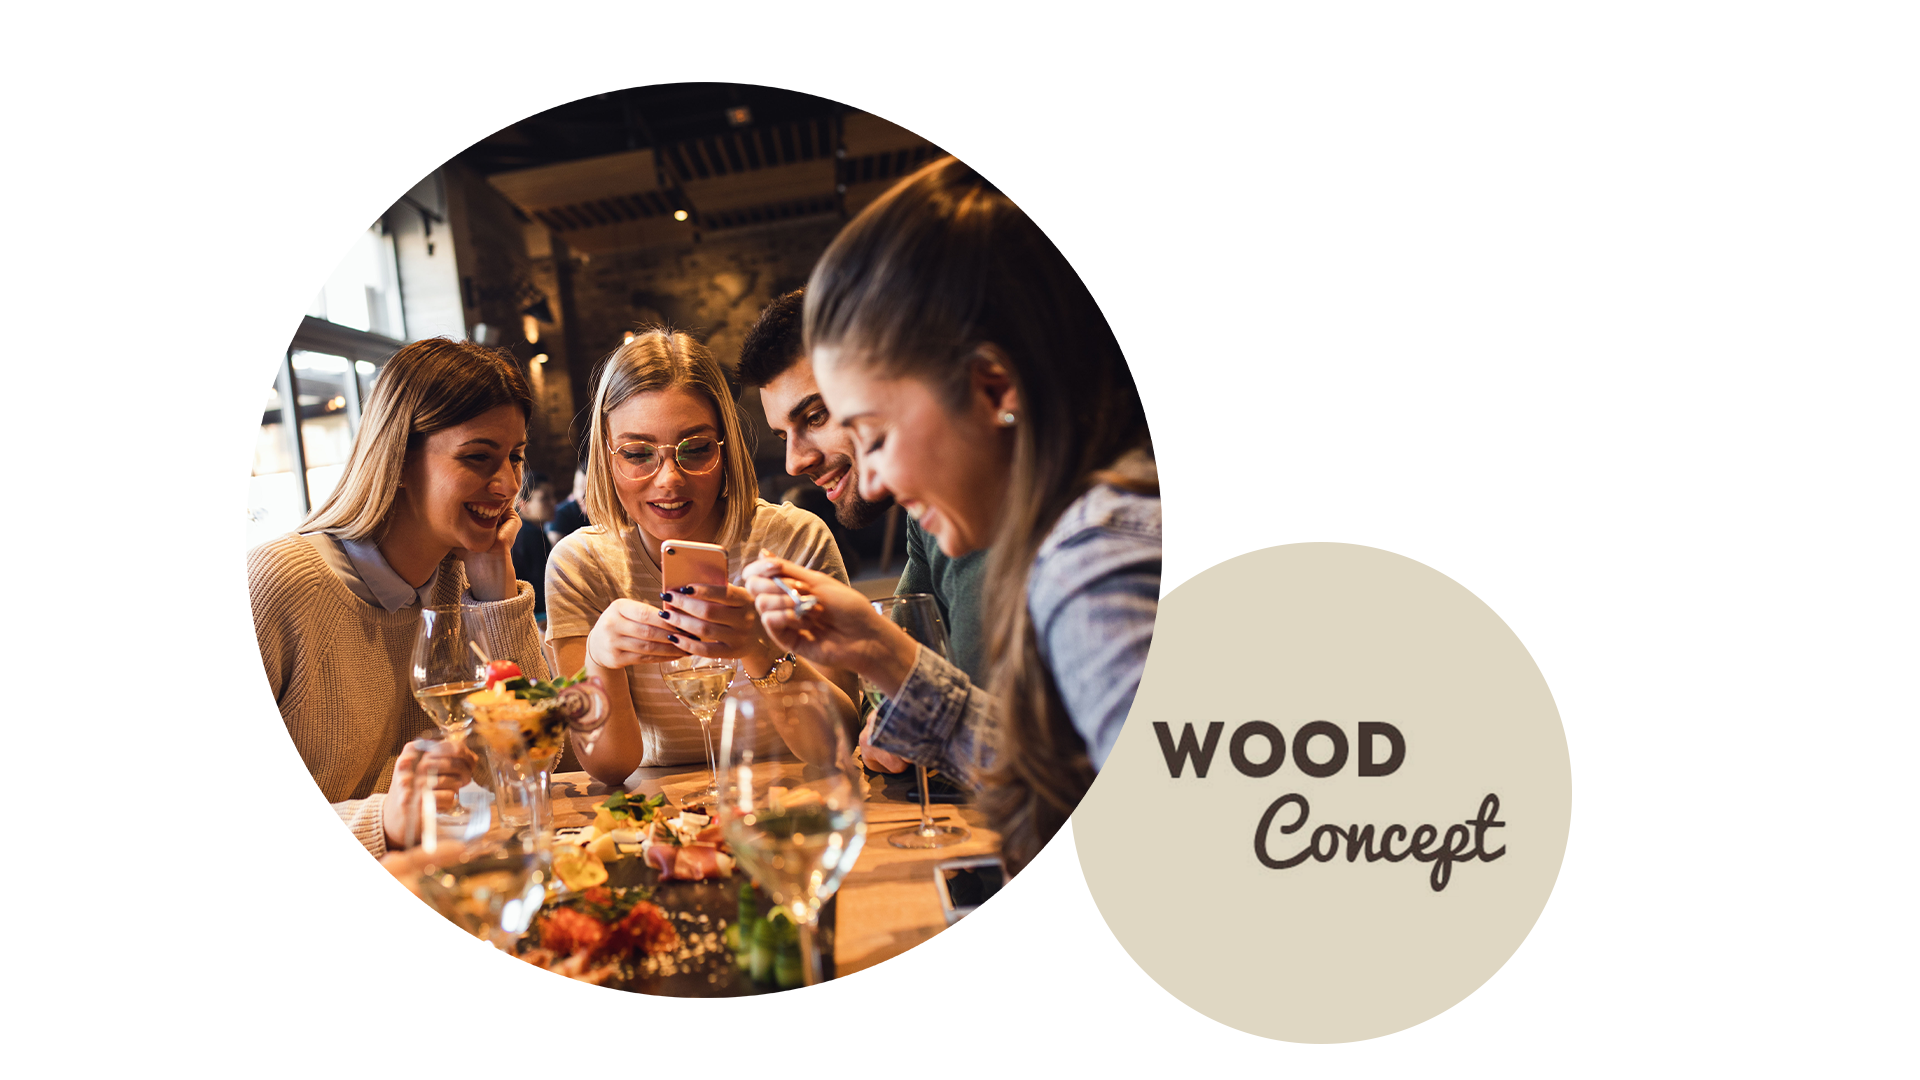 woodconcept,  Wc  Banner - Woodwork